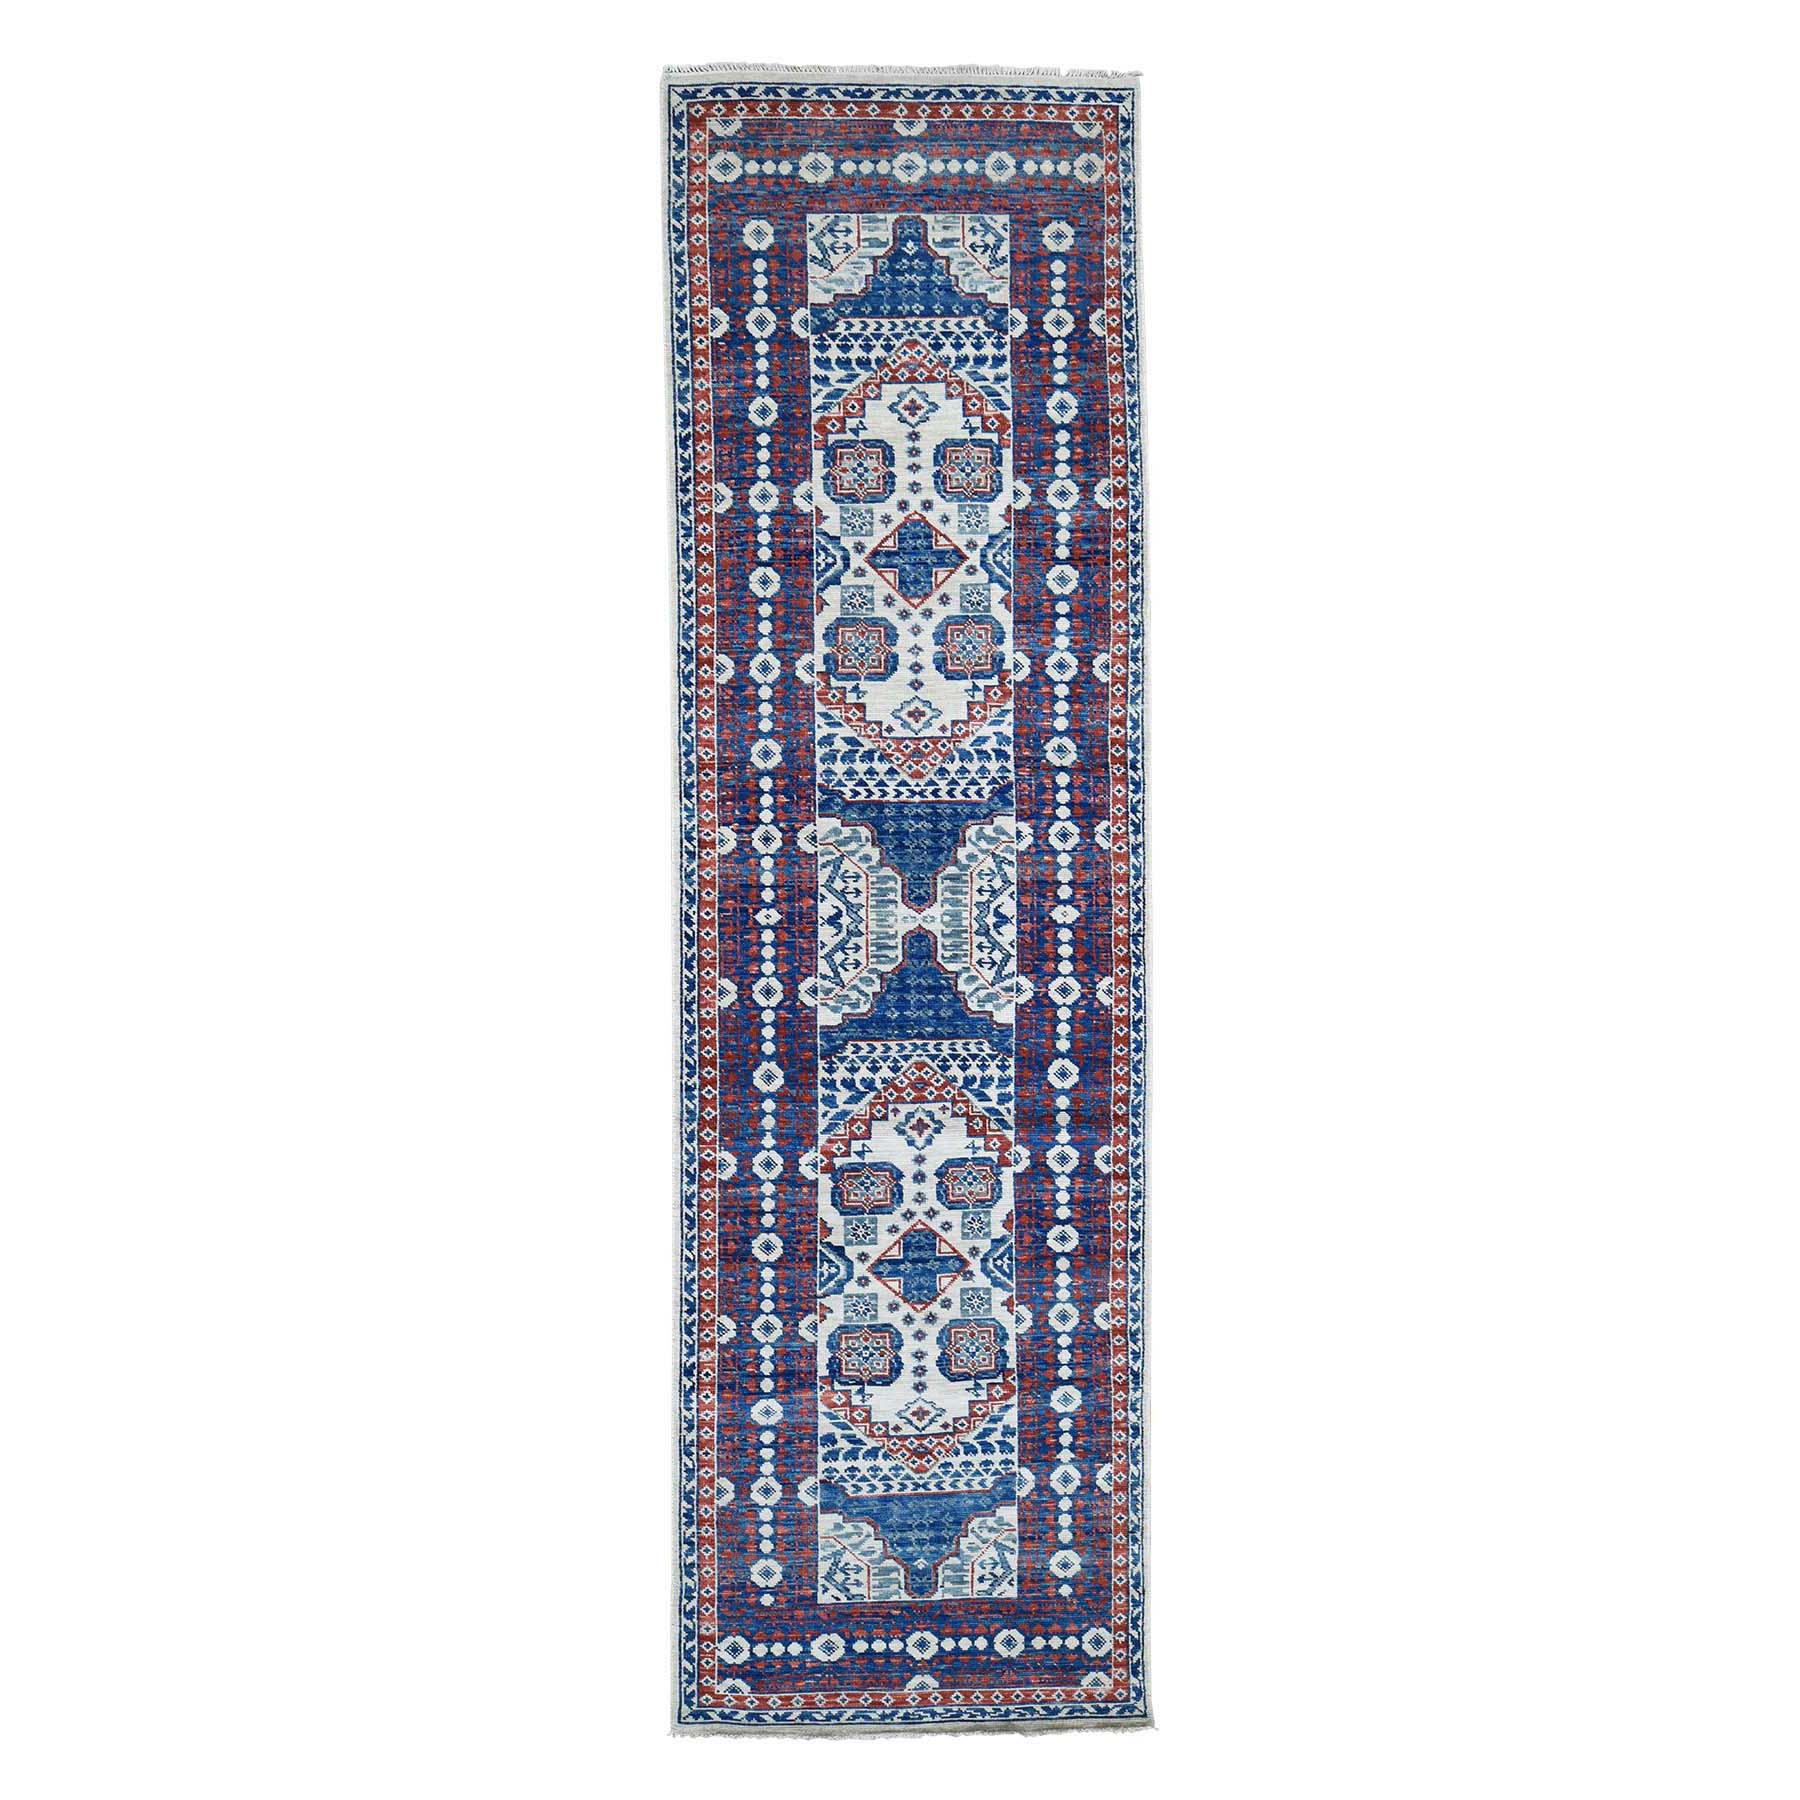 "4'1""x14' Ivory Mamluk Design Veg Dyes Hand Spun New Zealand Wool Oriental Wide Runner Rug"